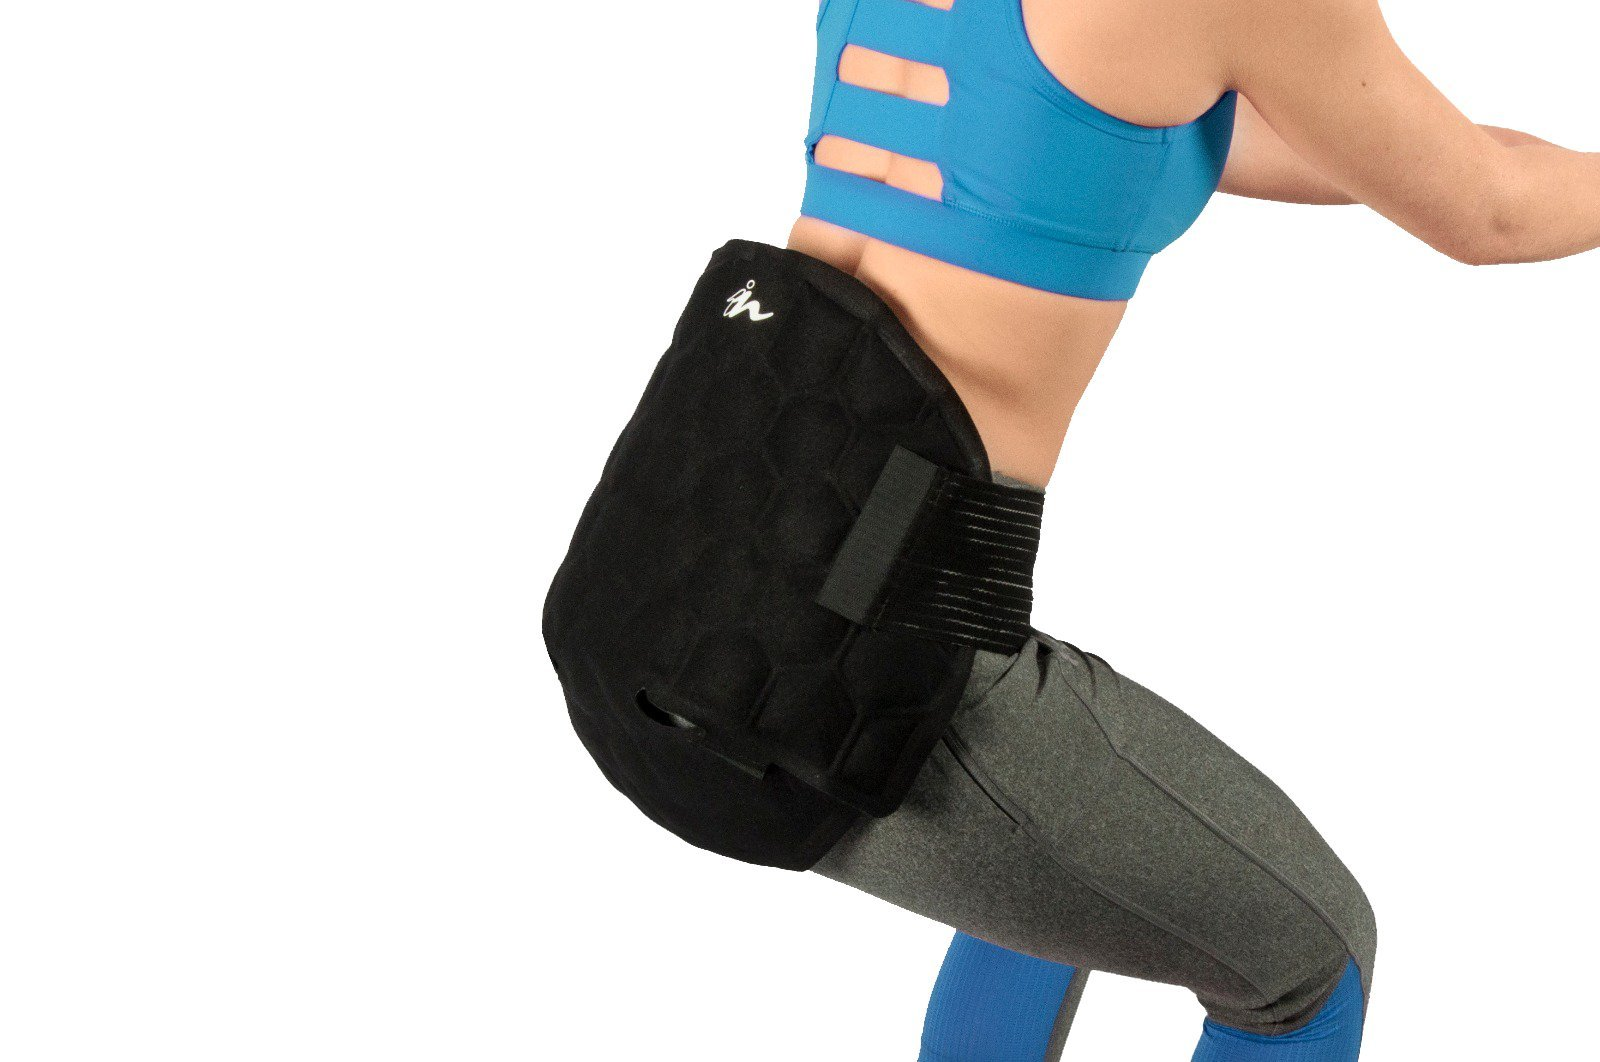 Sciatica Lumbar Pain Relief Cooling Wrap, Injury Recovery Wrap, Clinically Tested and Proven by Doctors by Nanohealth, Inc